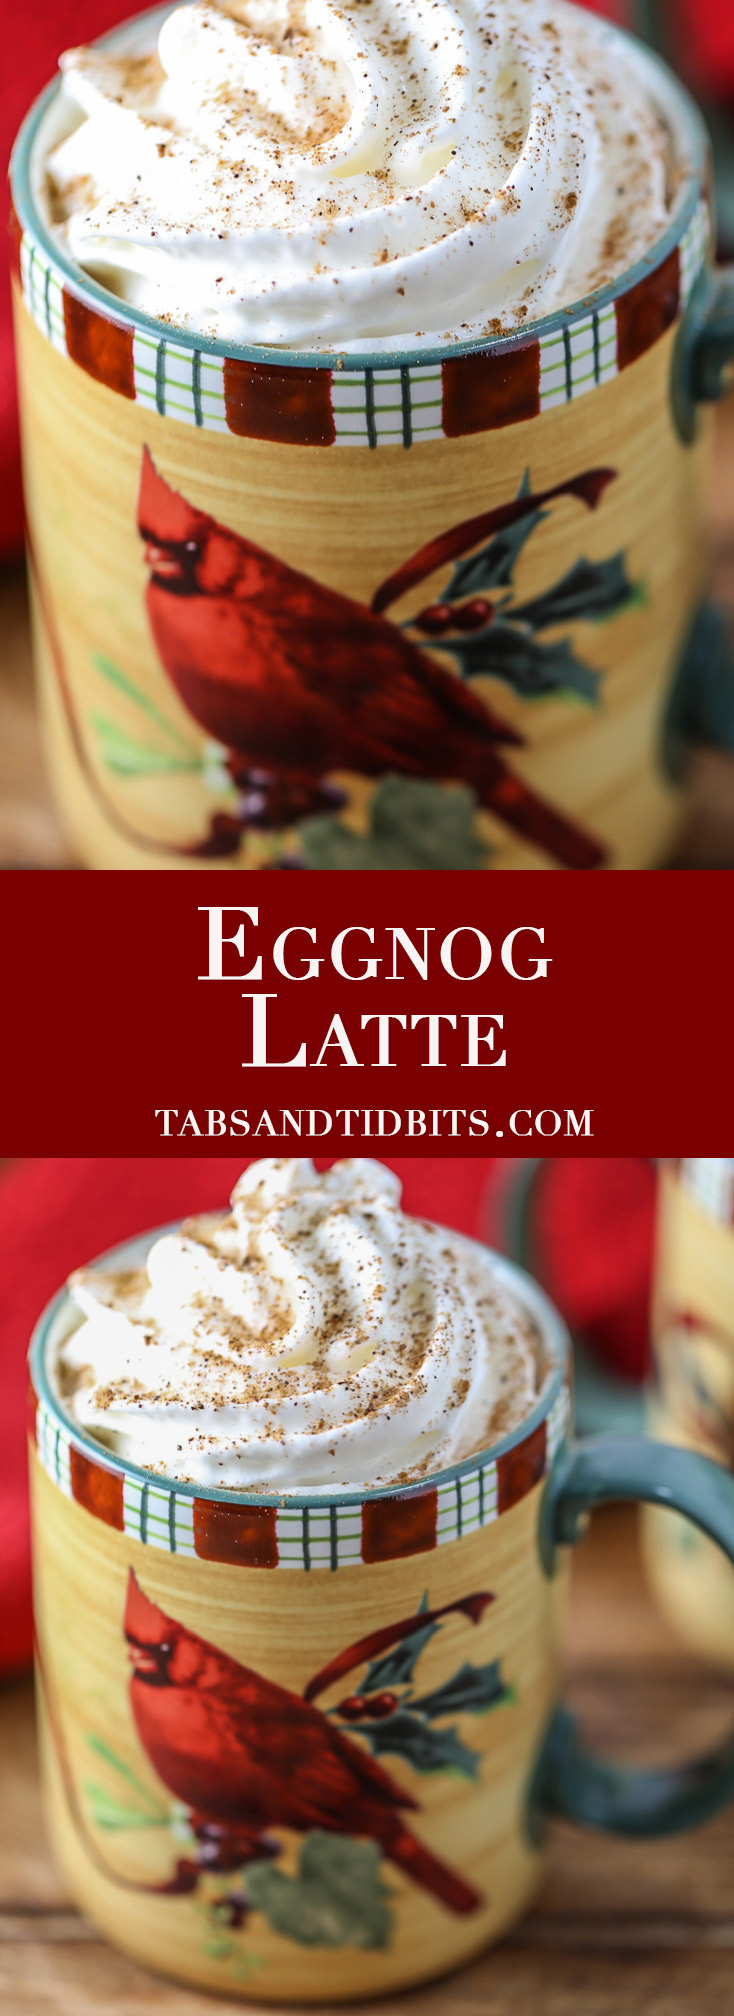 Eggnog Latte - Store-bought eggnog and strong brewed coffee make the perfect treat without having to make a trip to the coffee shop!